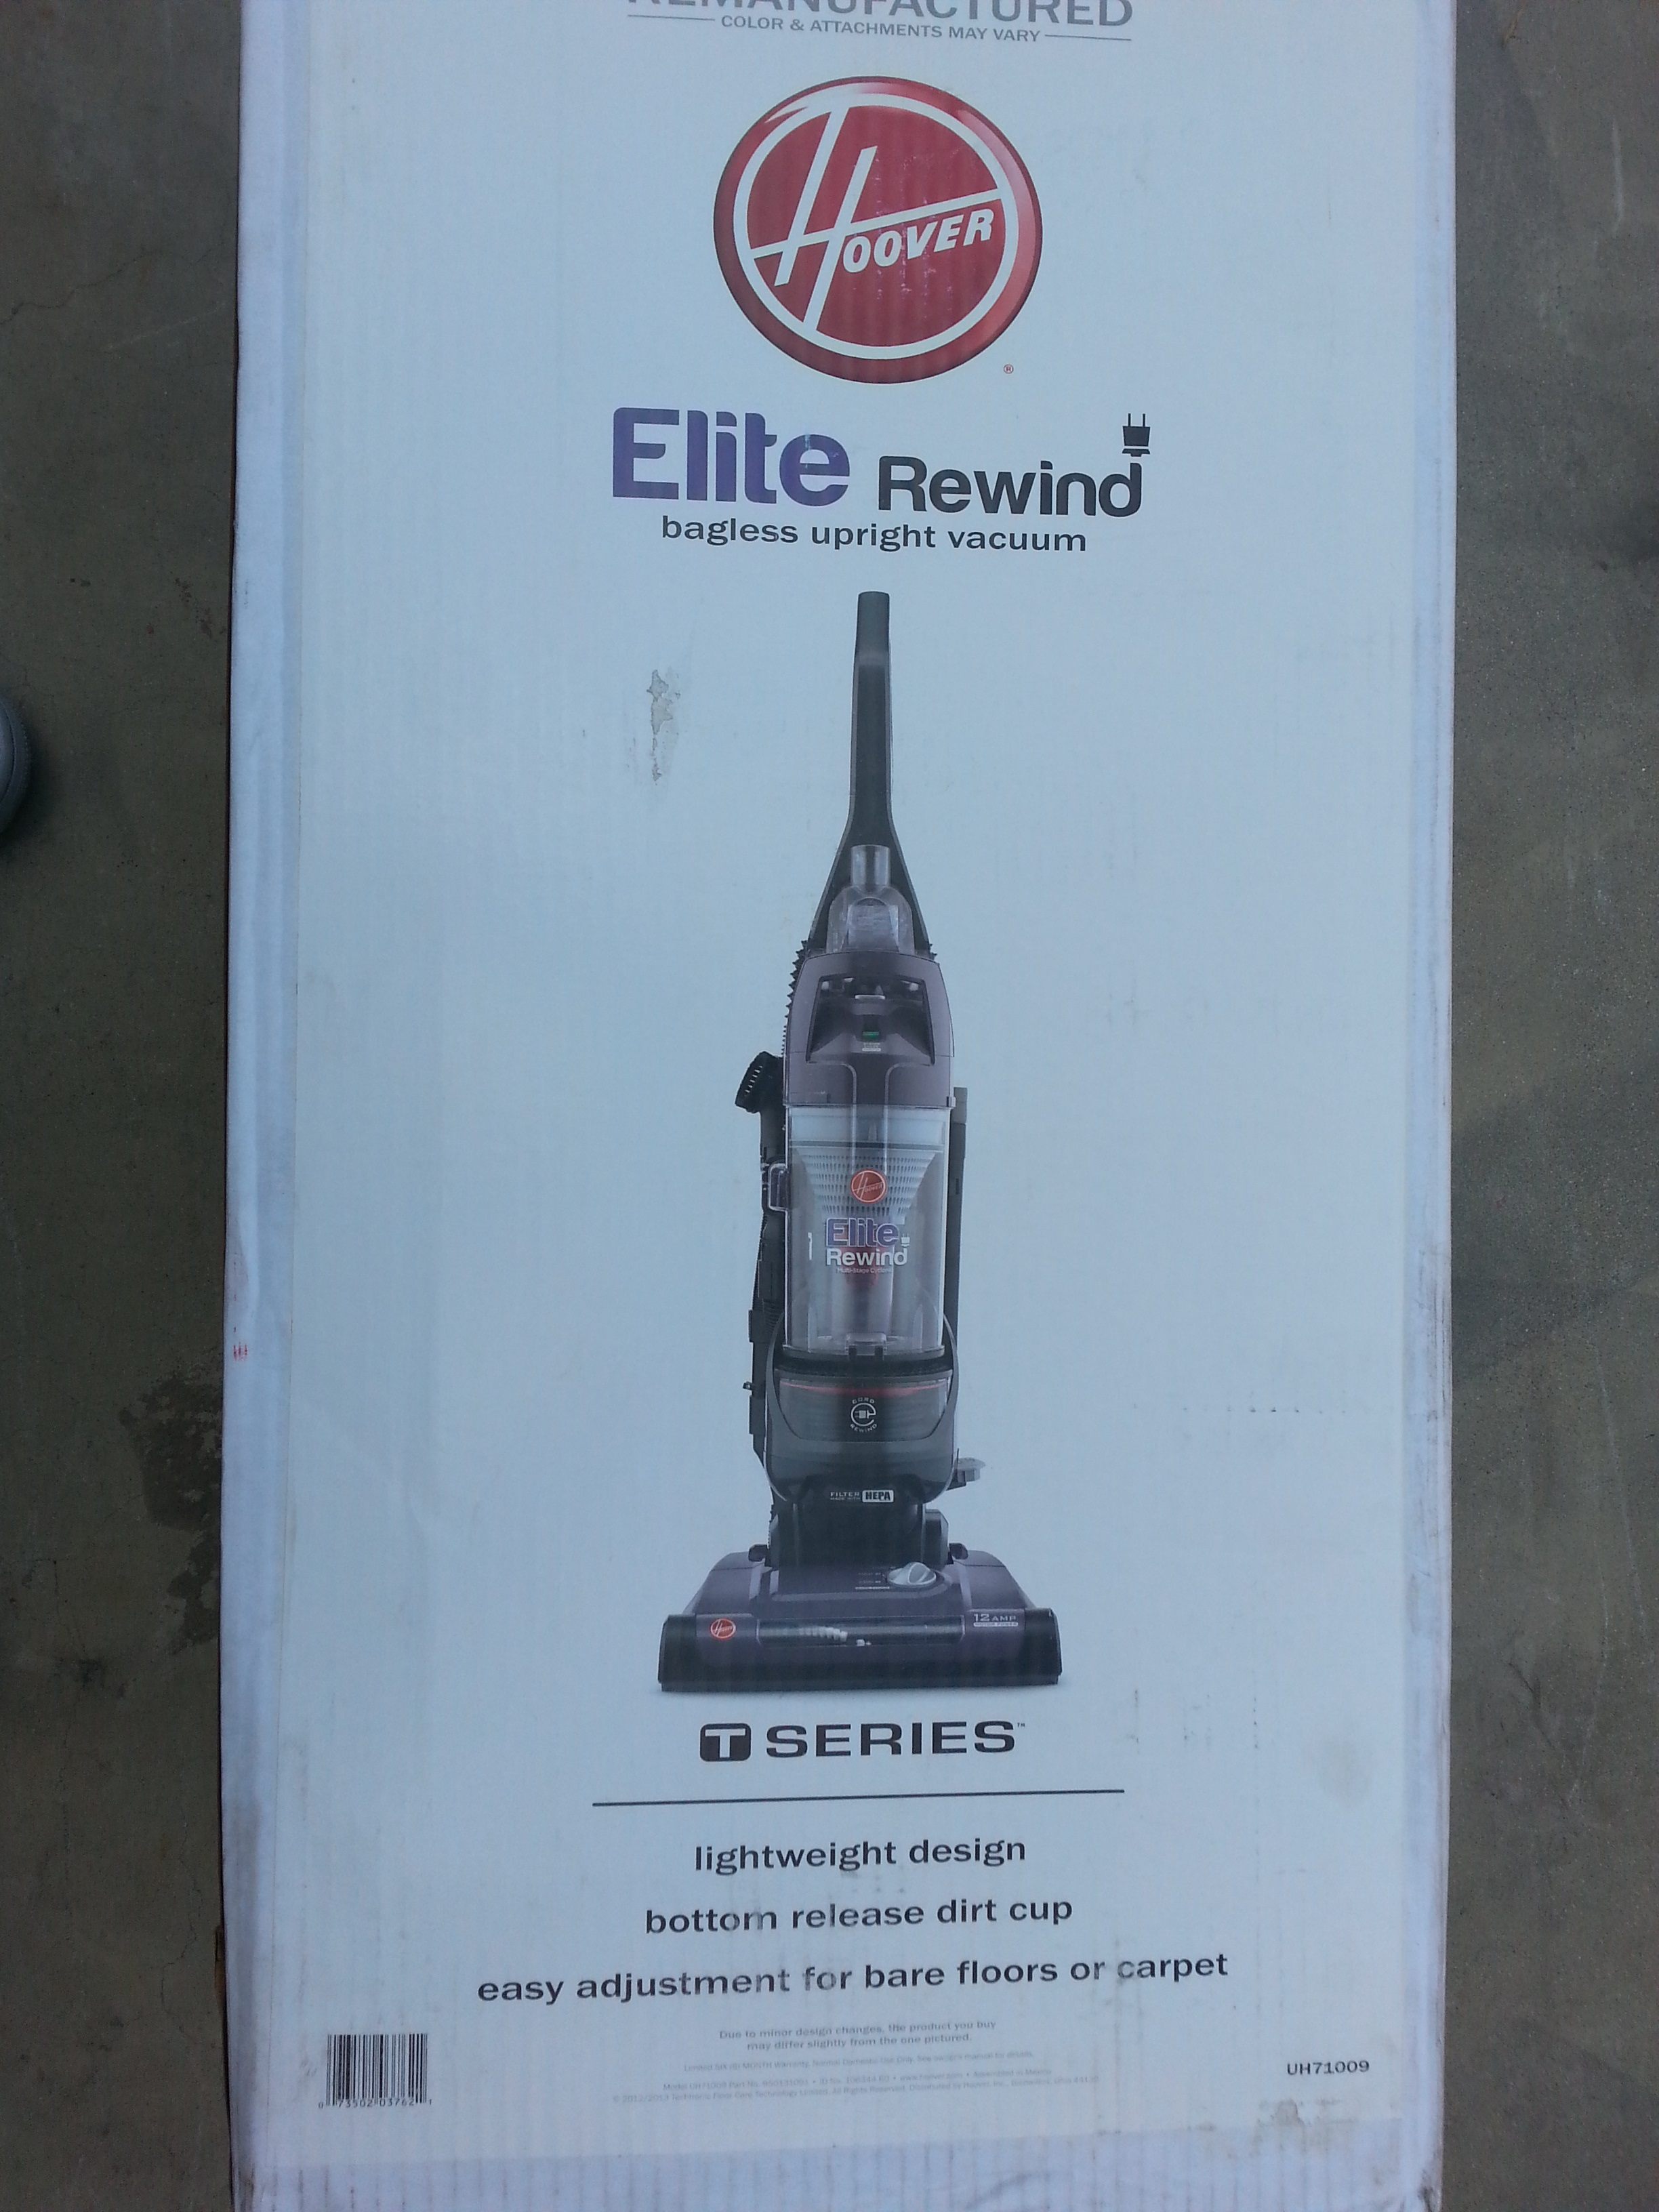 UH71009 RB  ELITE REWIND BAGLESS UPRIGHT VACUUM